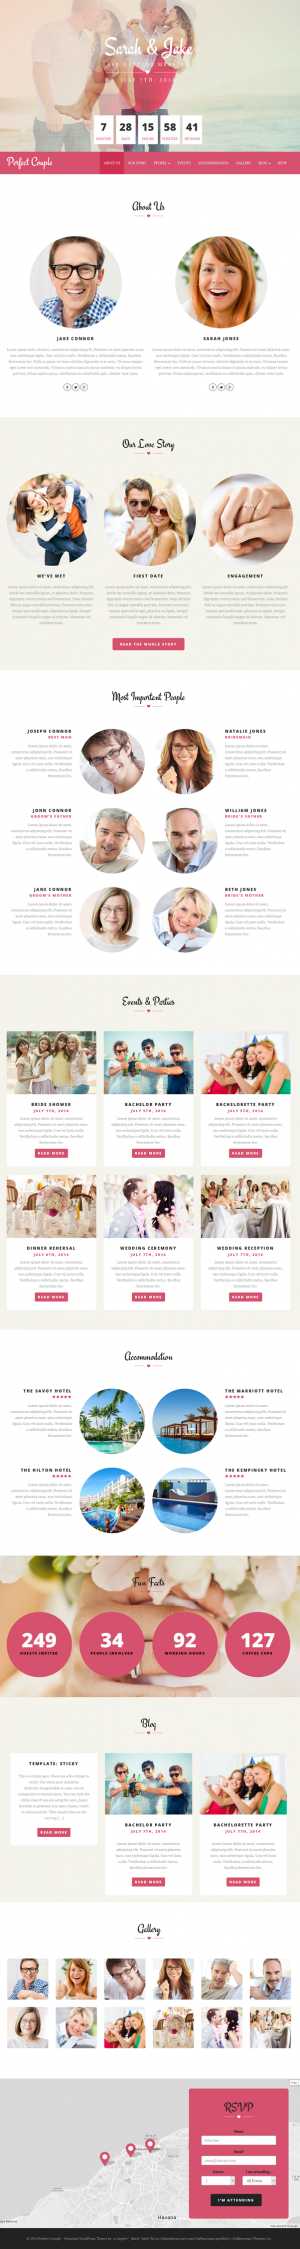 Perfect Couple is a nice and responsive WordPress theme for wedding, engagement or other events ...